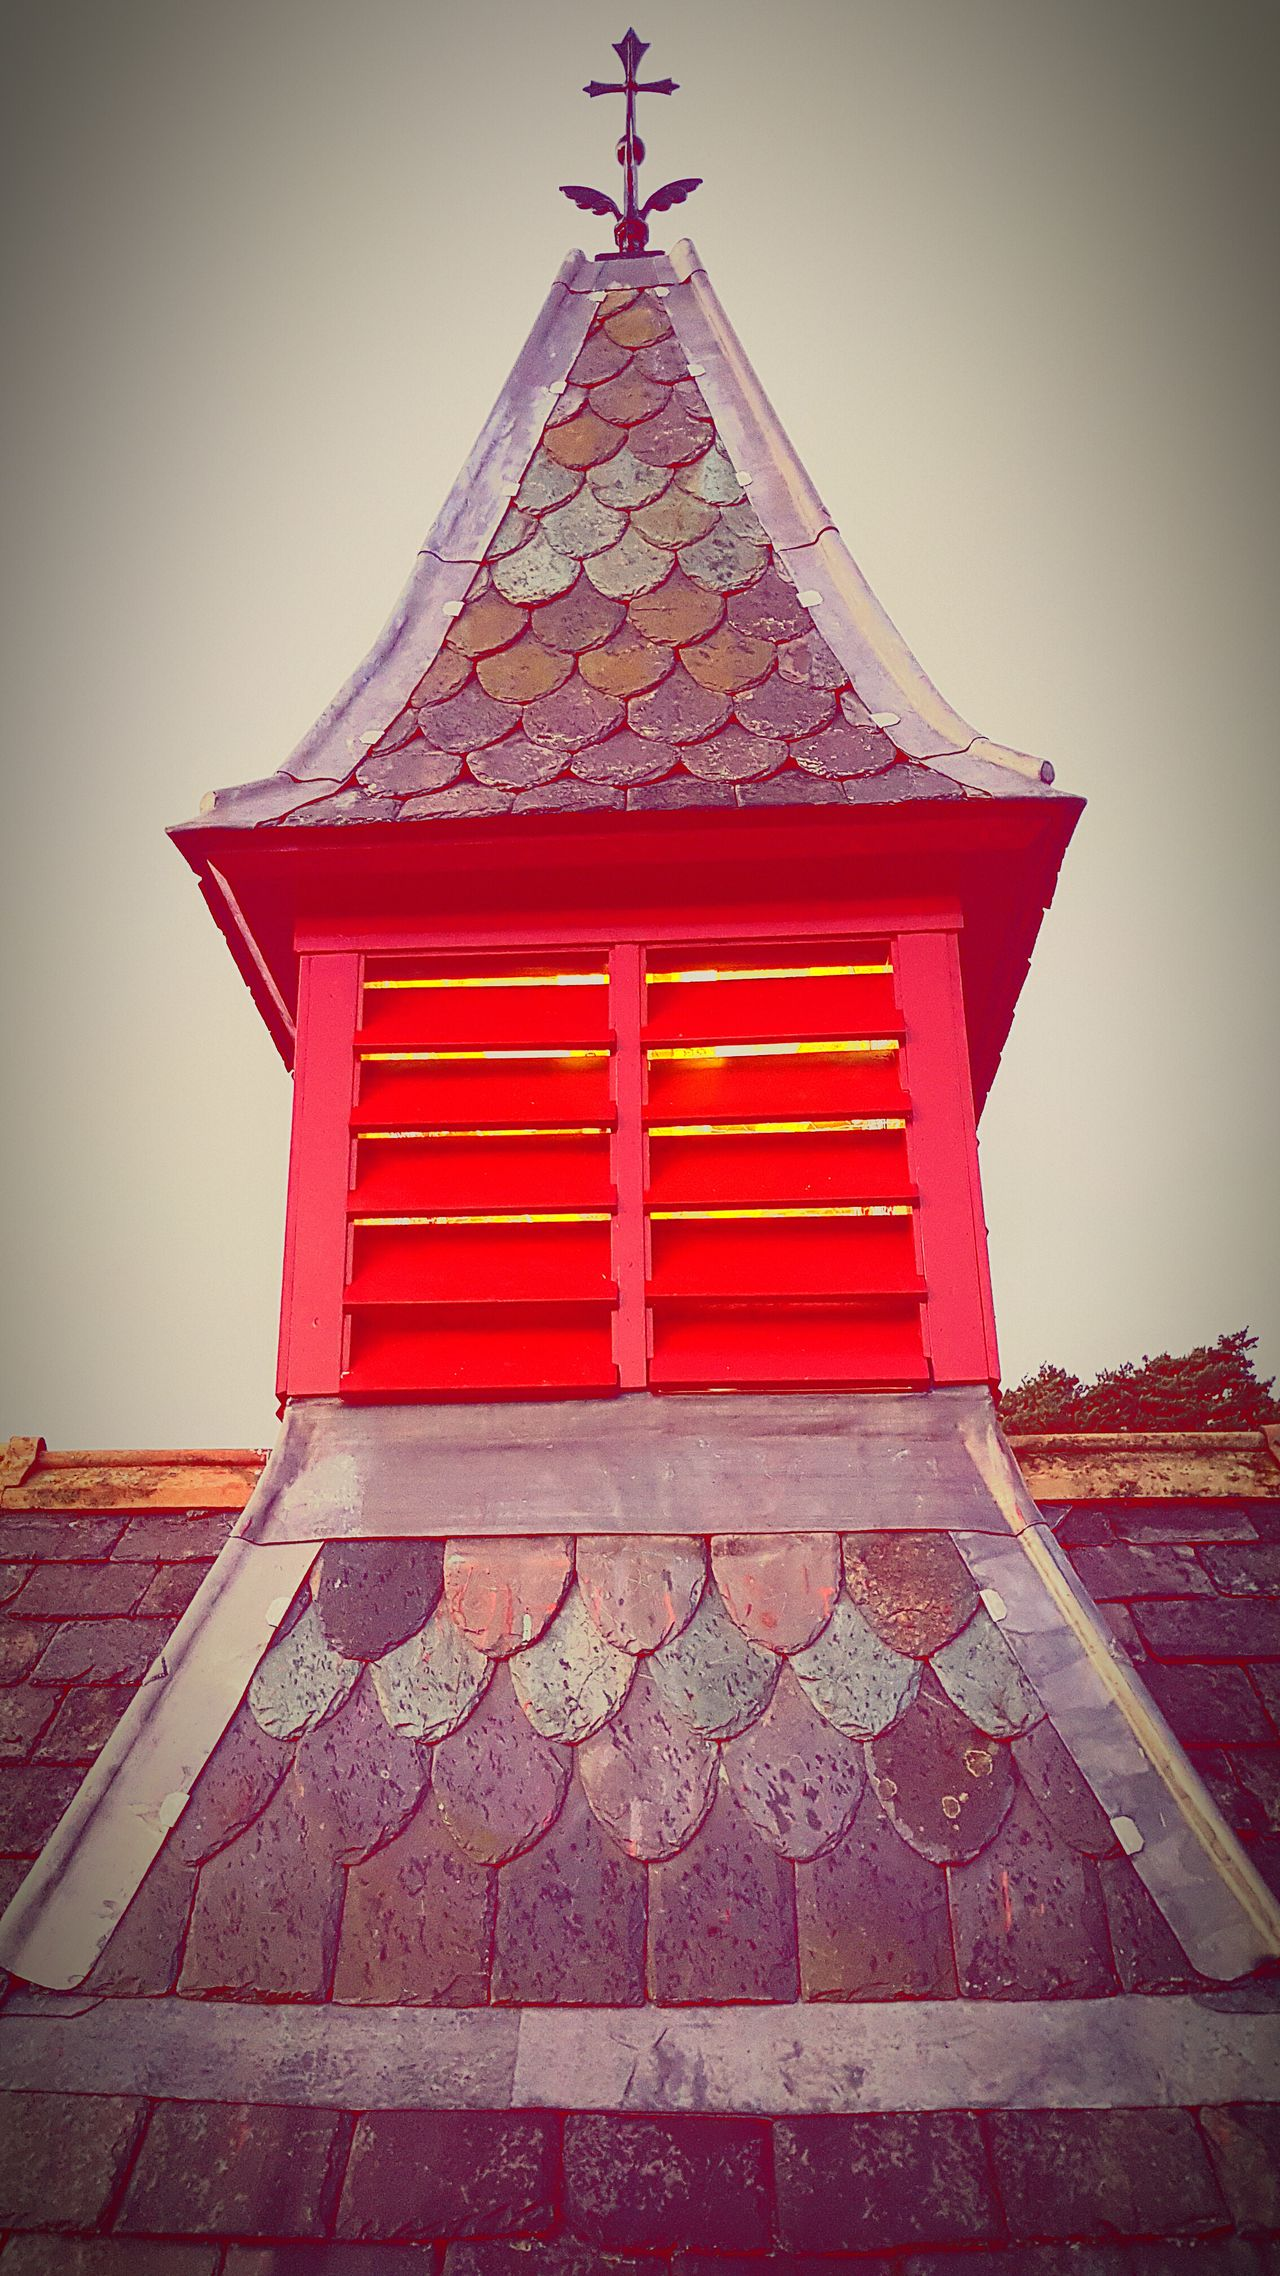 Turret roof slates Architecture Building Exterior Built Structure No People Roof Old-fashioned Outdoors Day Sky